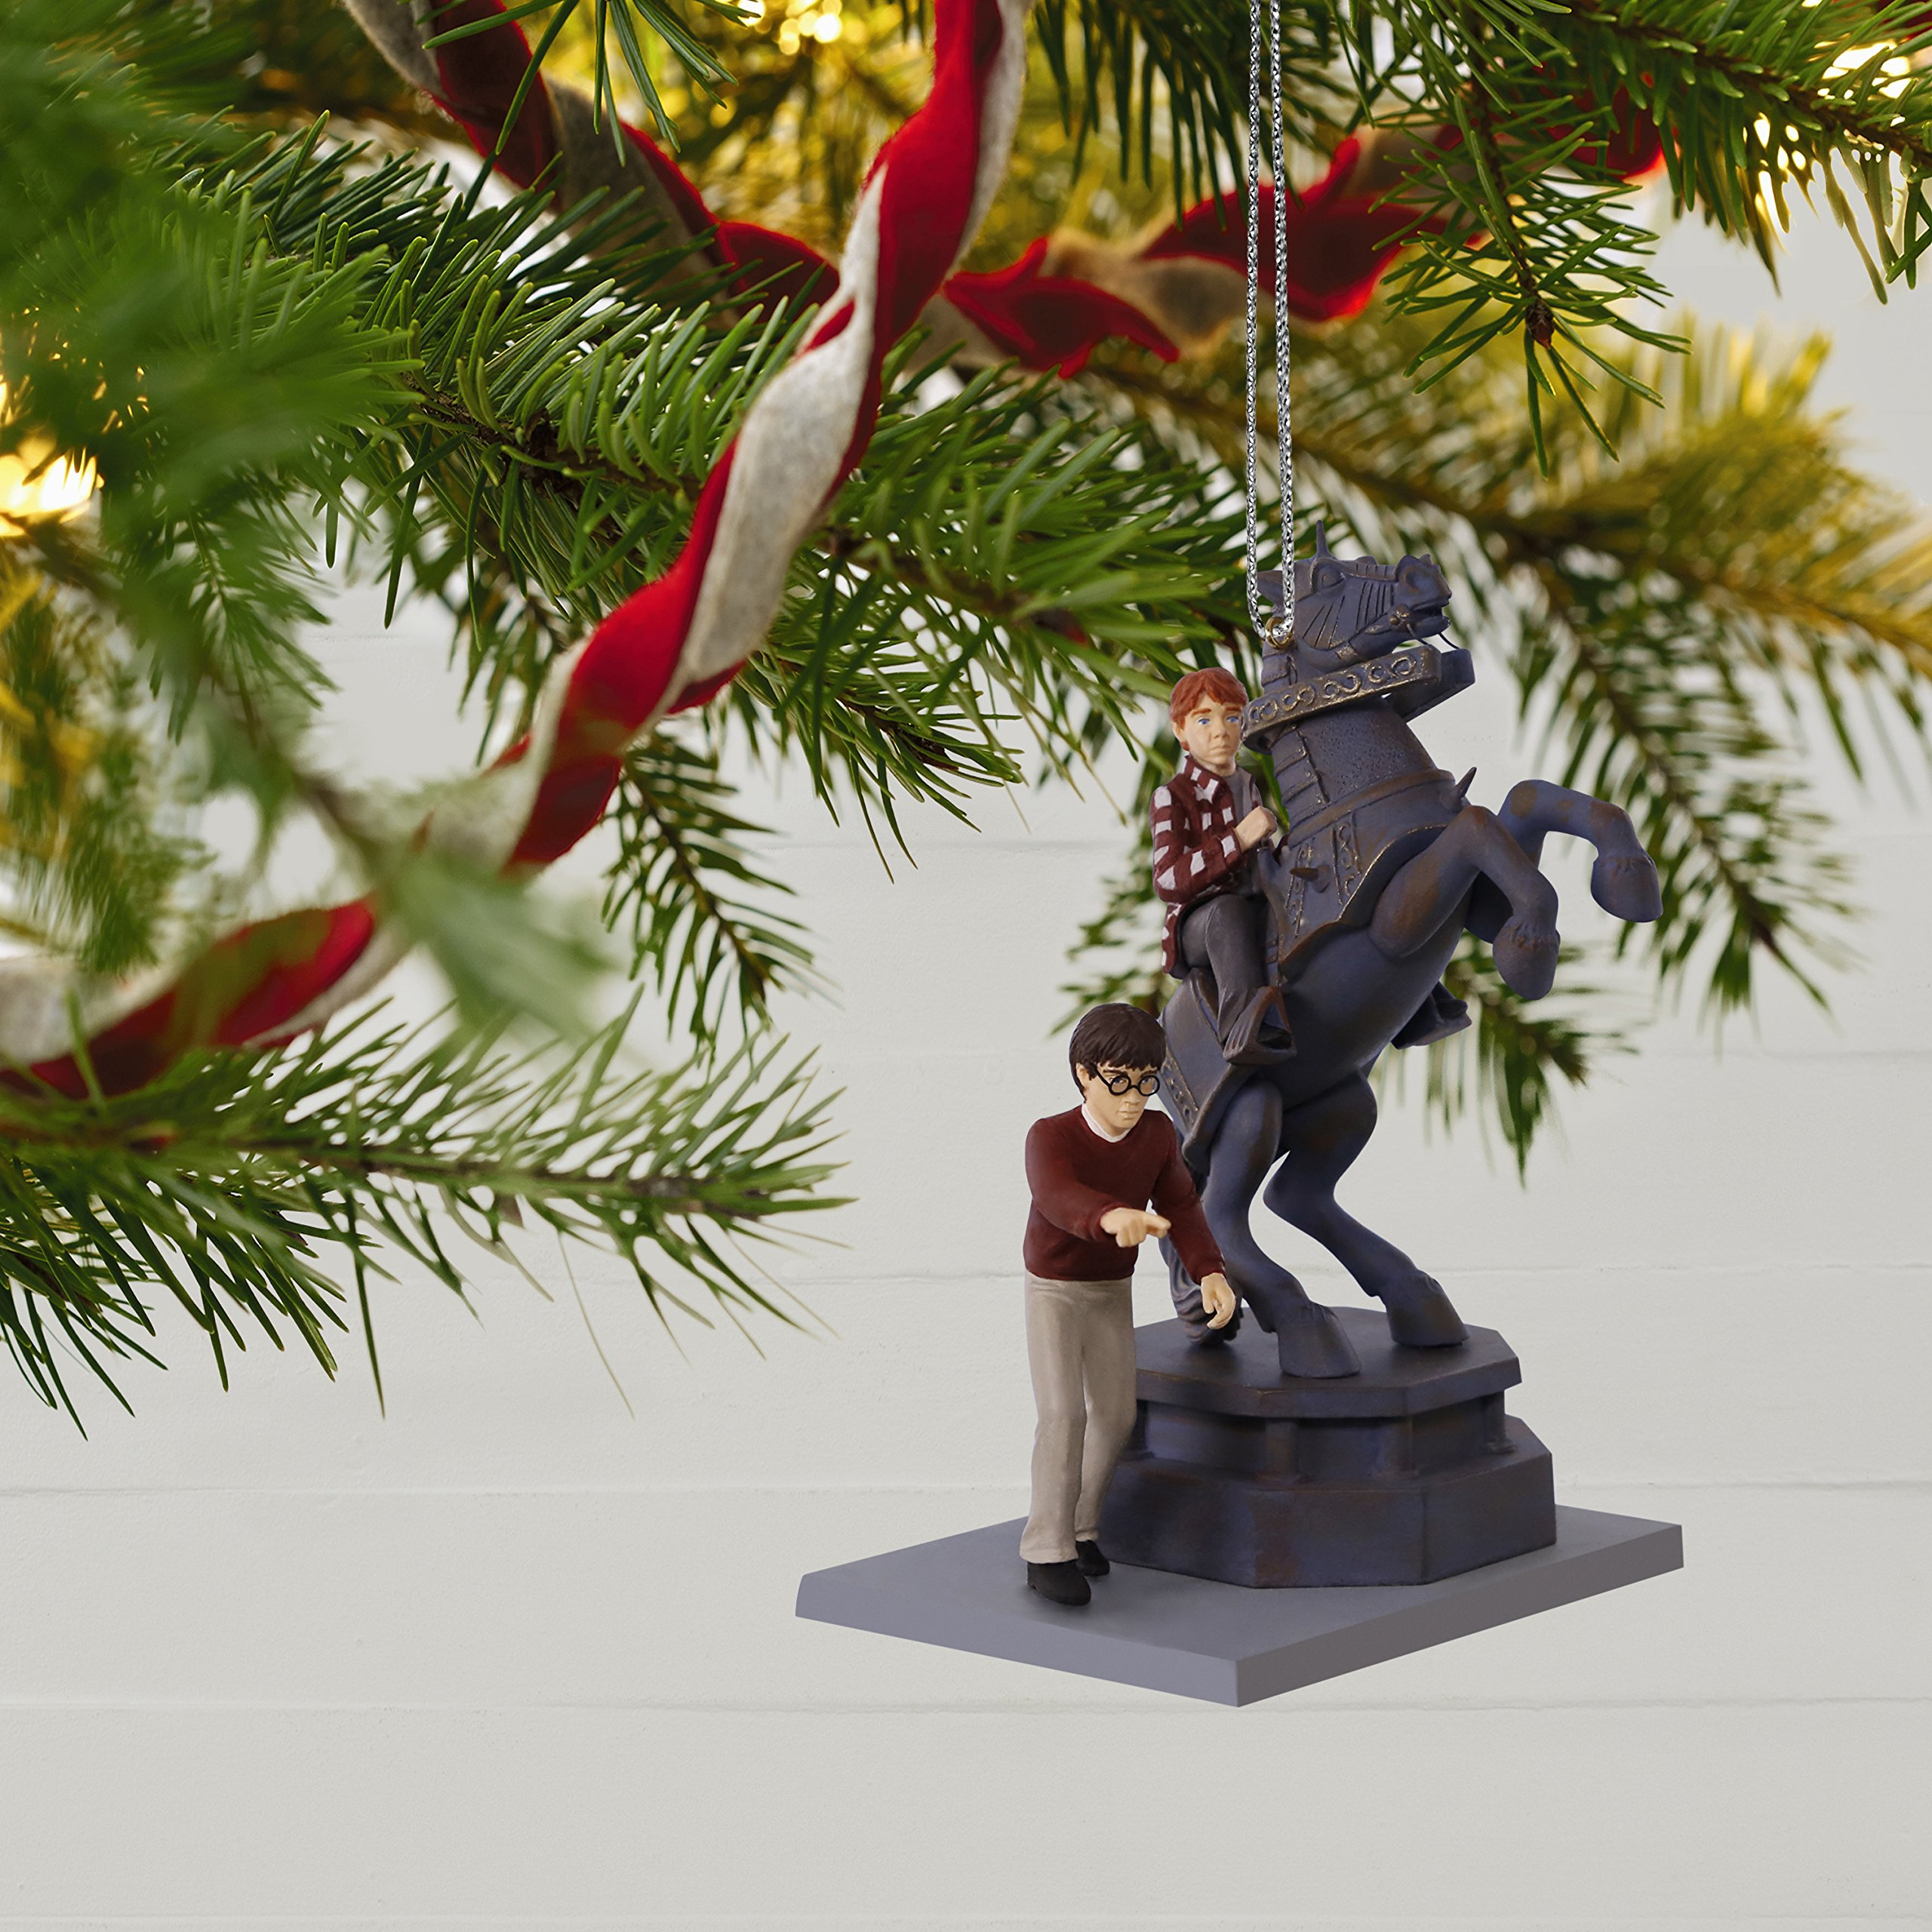 this hallmark harry potter christmas ornament depicts the exciting human chess game scene from harry potter and the sorcerers stone as ron weasley risks - Harry Potter Christmas Decorations